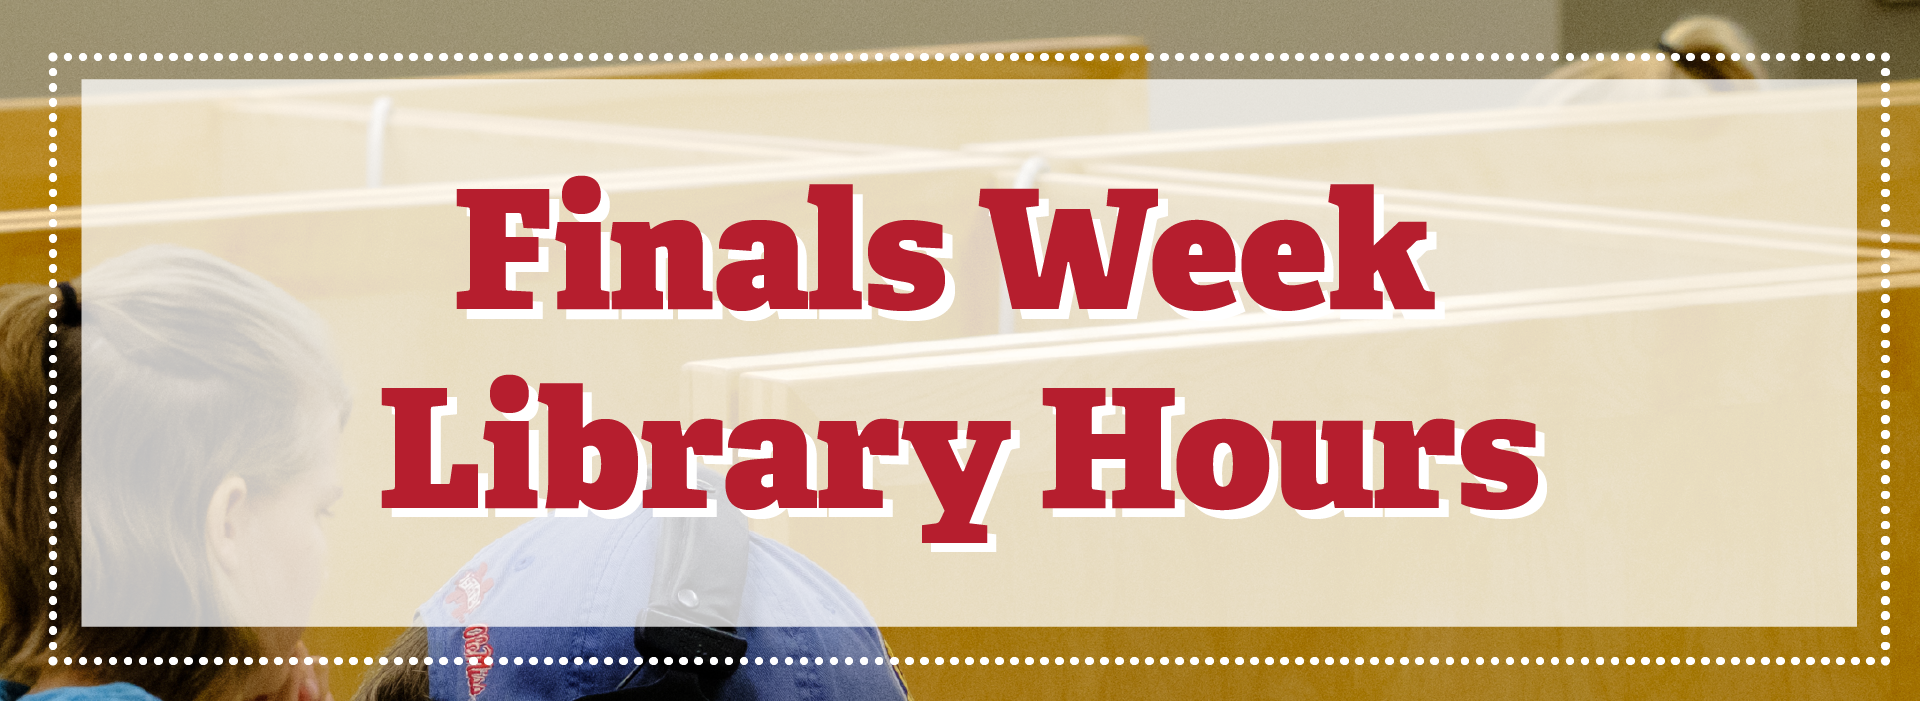 Finals Week Library Hours